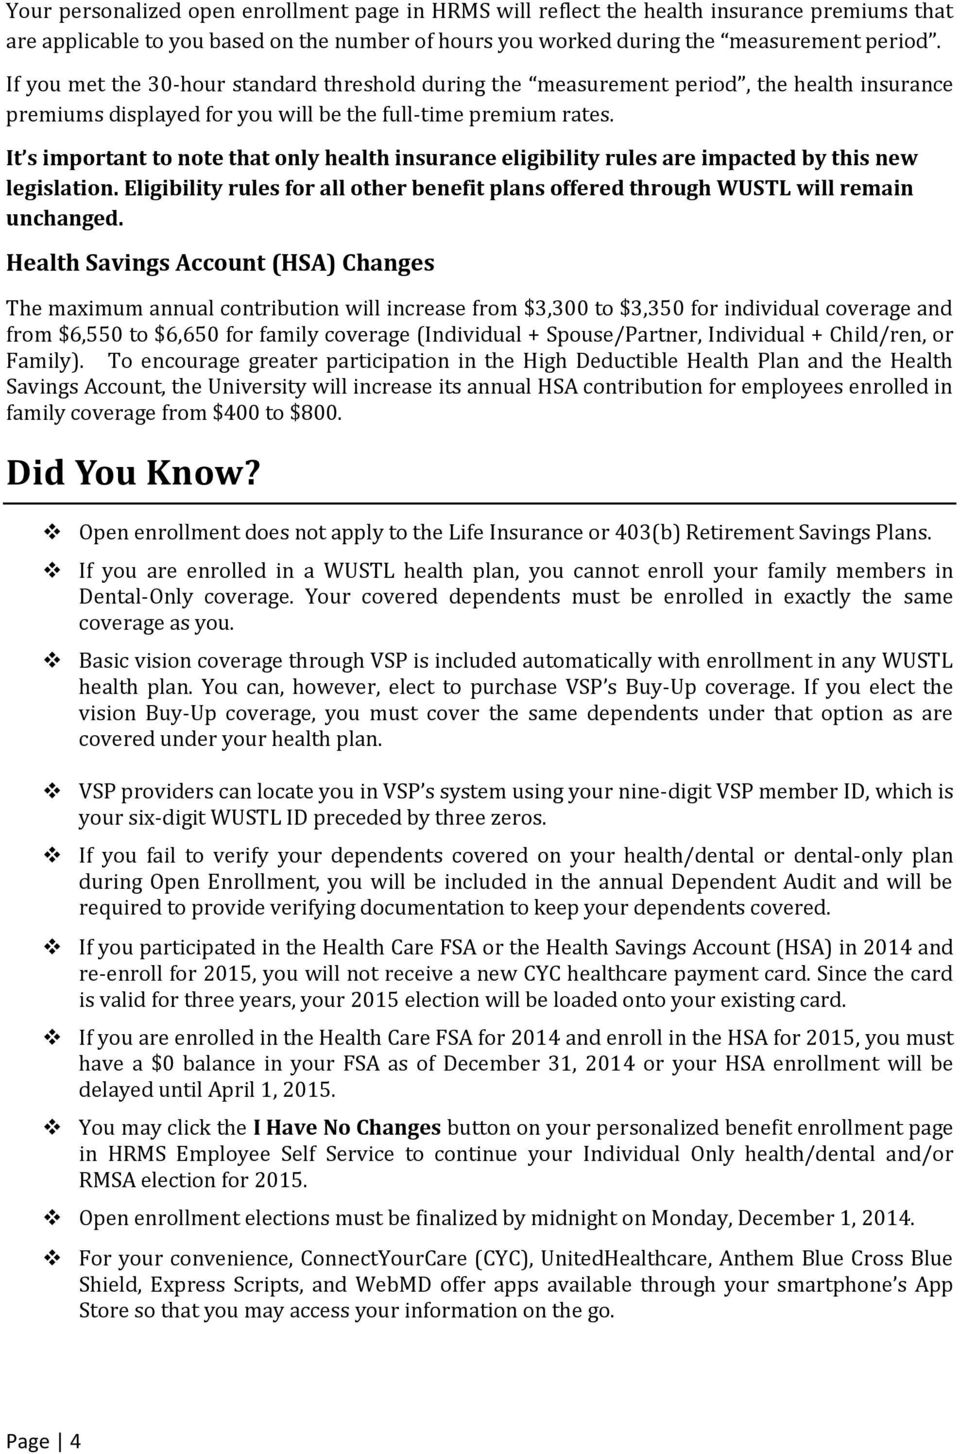 It s important to note that only health insurance eligibility rules are impacted by this new legislation. Eligibility rules for all other benefit plans offered through WUSTL will remain unchanged.